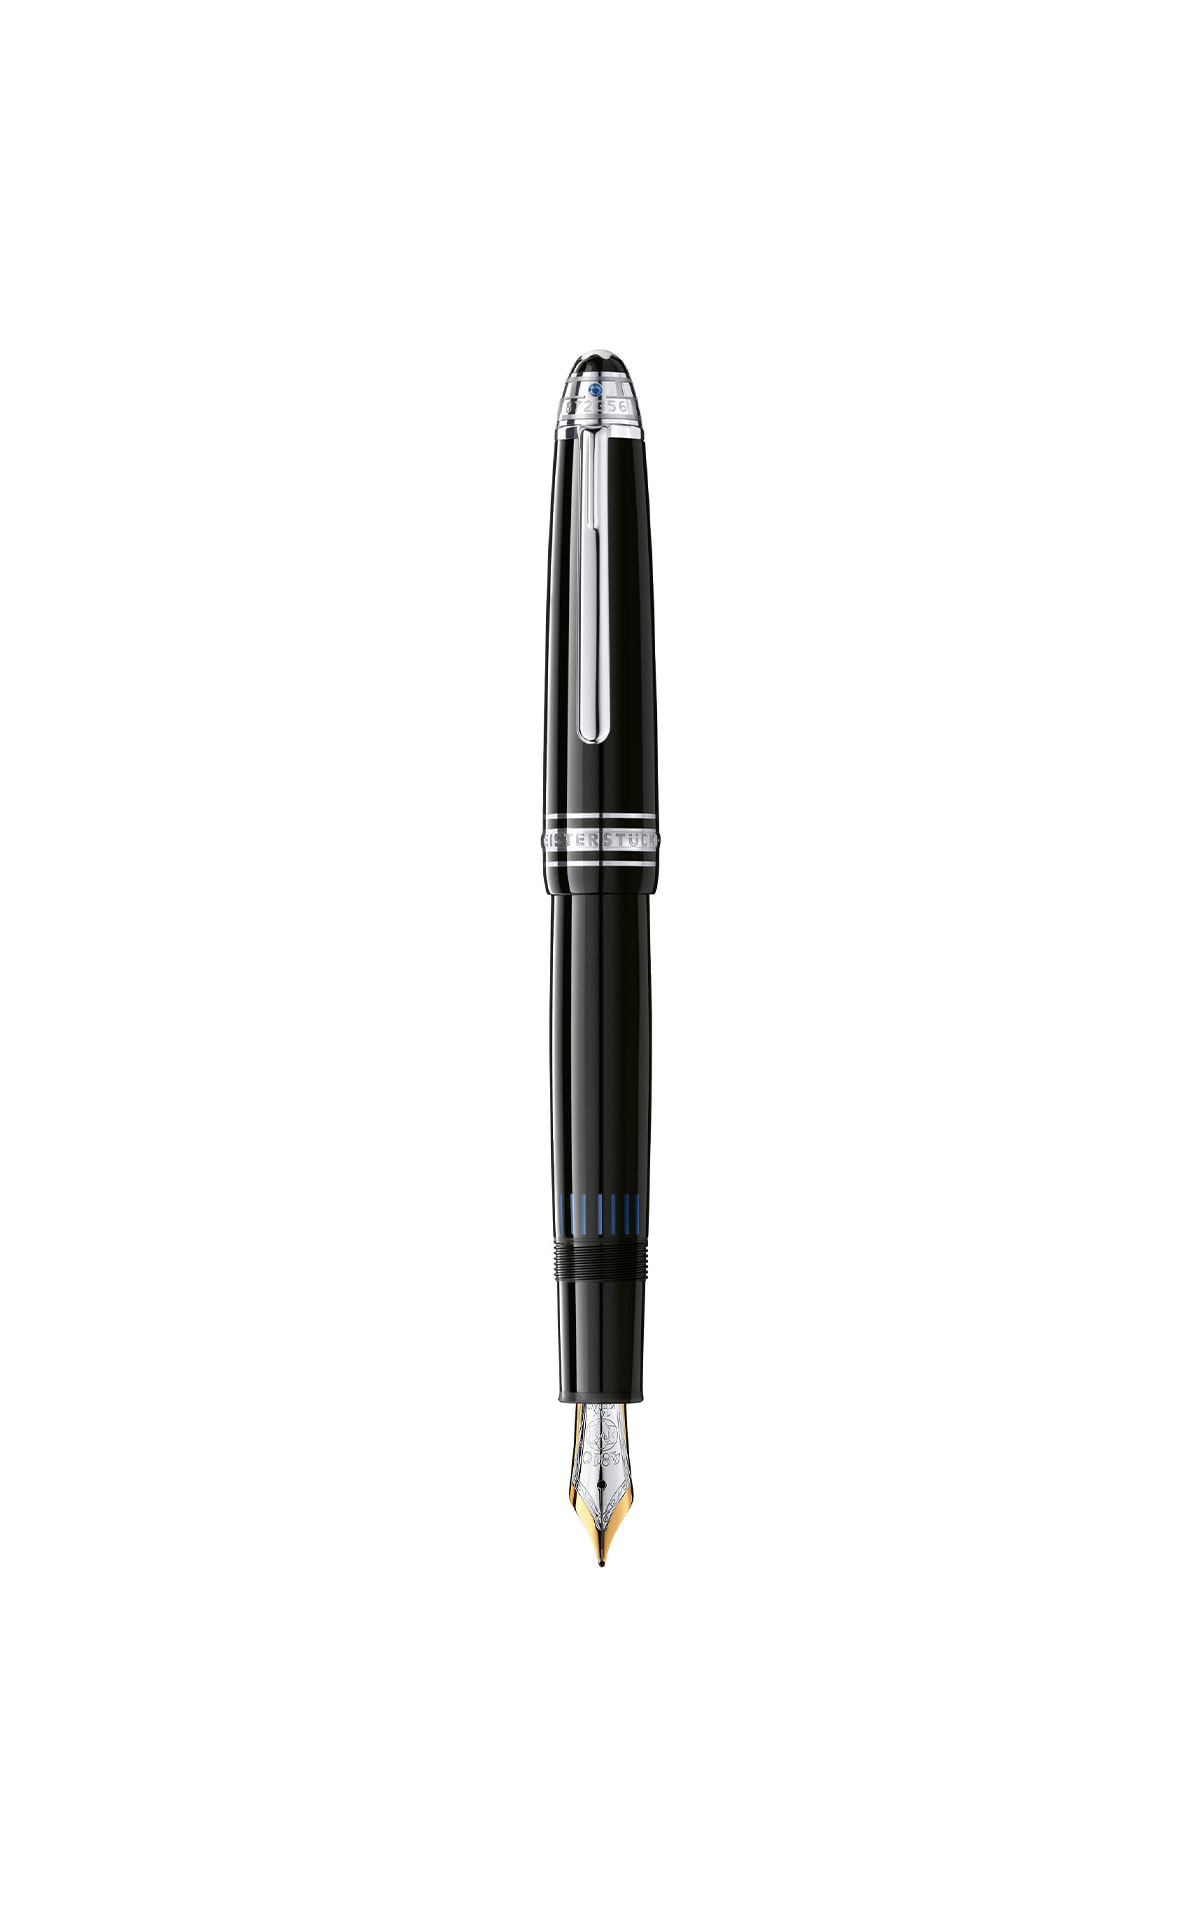 Montblanc FP Montblanc UNICEF meisterstück le grand platinum fountain from Bicester Village